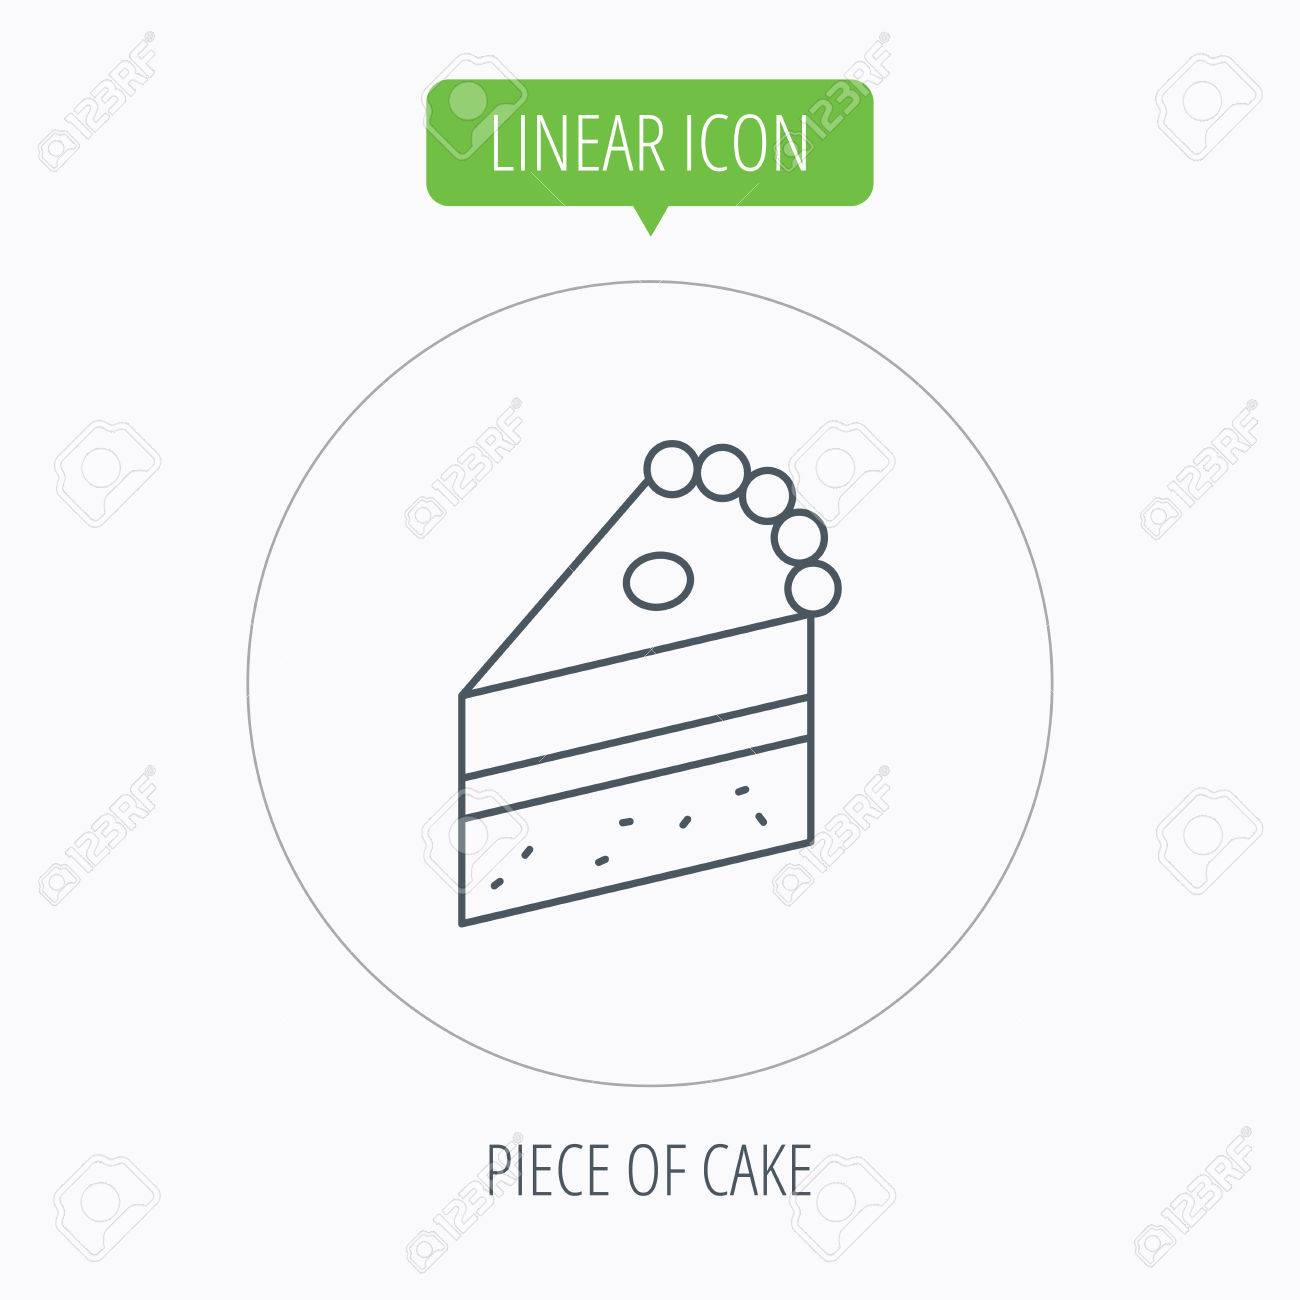 Piece of cake icon sweet dessert sign pastry food symbol linear piece of cake icon sweet dessert sign pastry food symbol linear outline circle buycottarizona